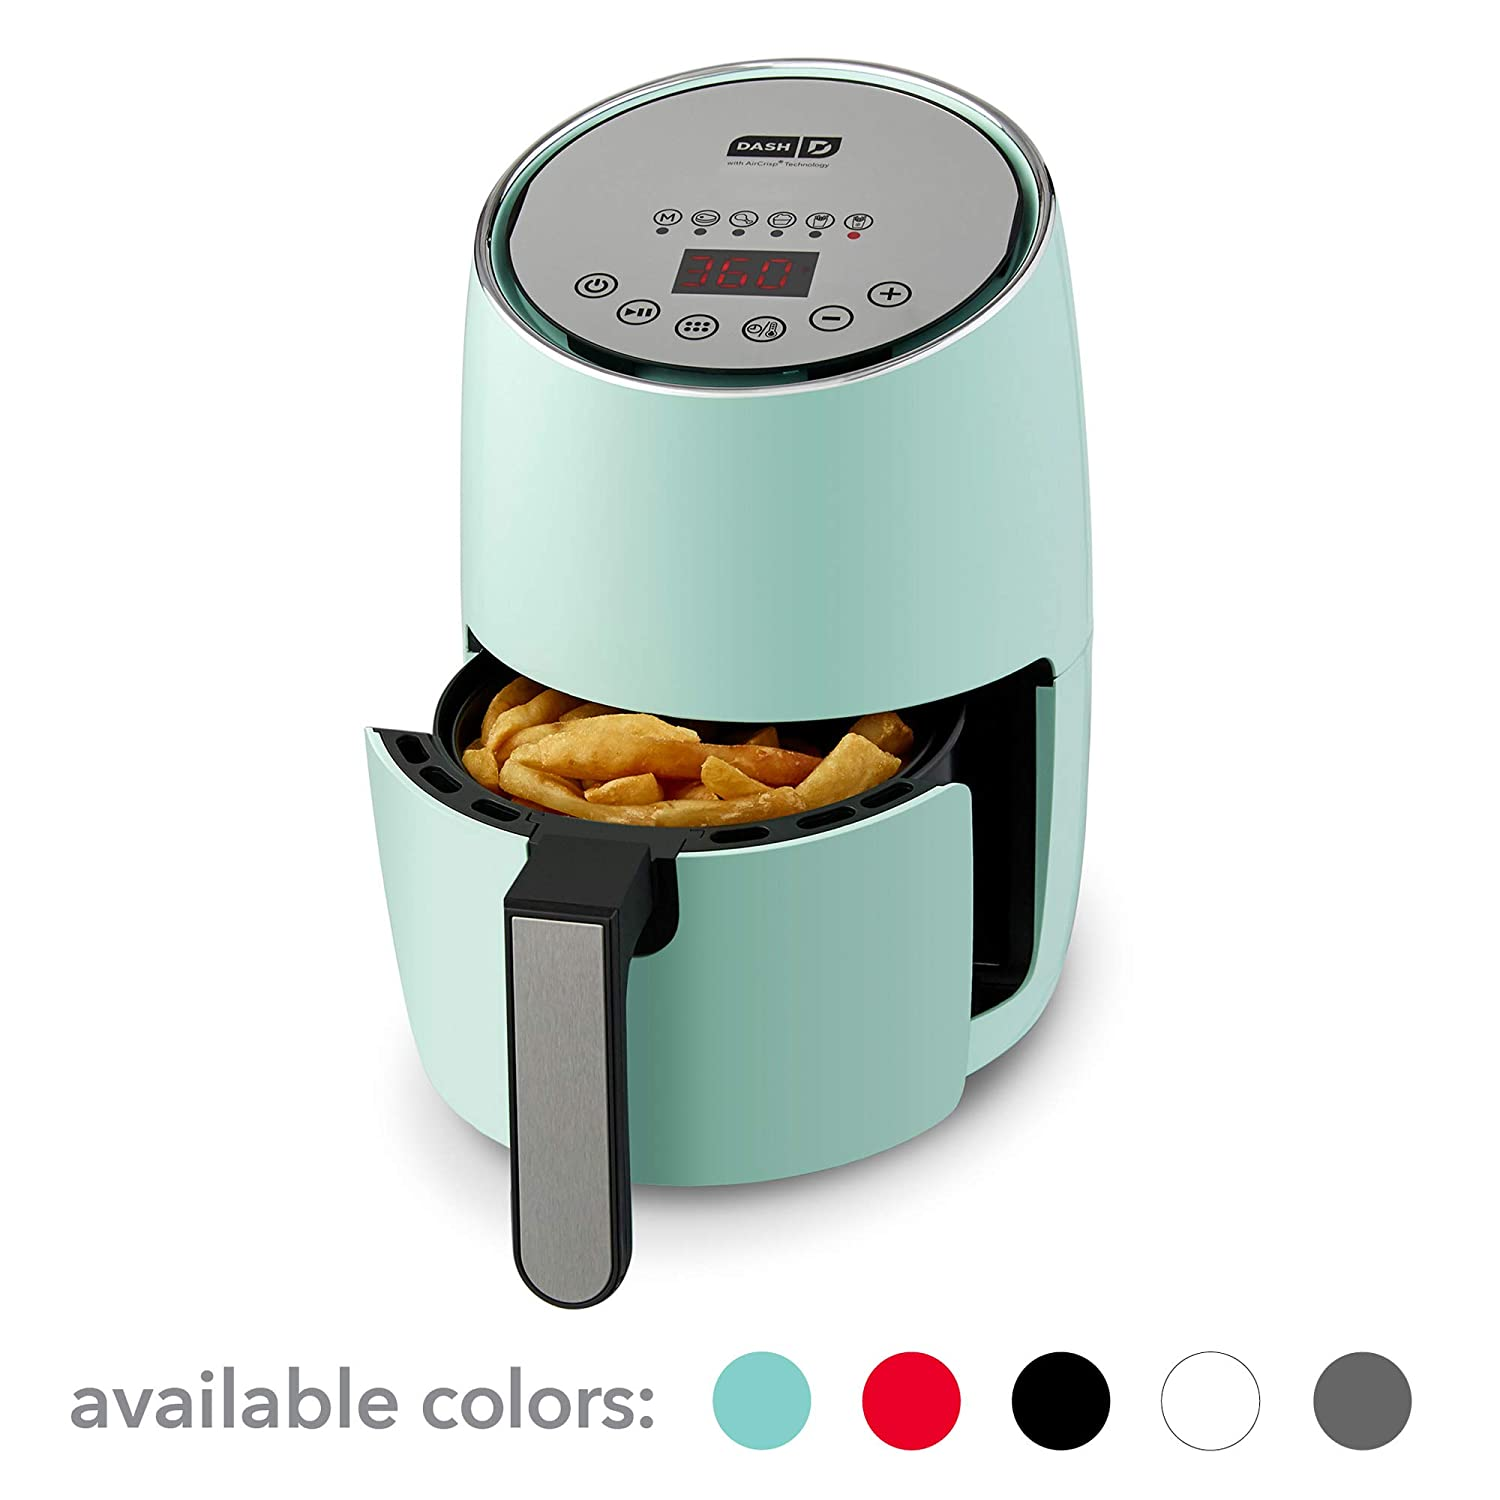 DASH Compact Electric Air Fryer + Oven Cooker with Digital Display, Temperature Control, Non Stick Fry Basket, Recipe Guide + Auto Shut Off Feature, 1.6 L, up to 2 QT, Aqua